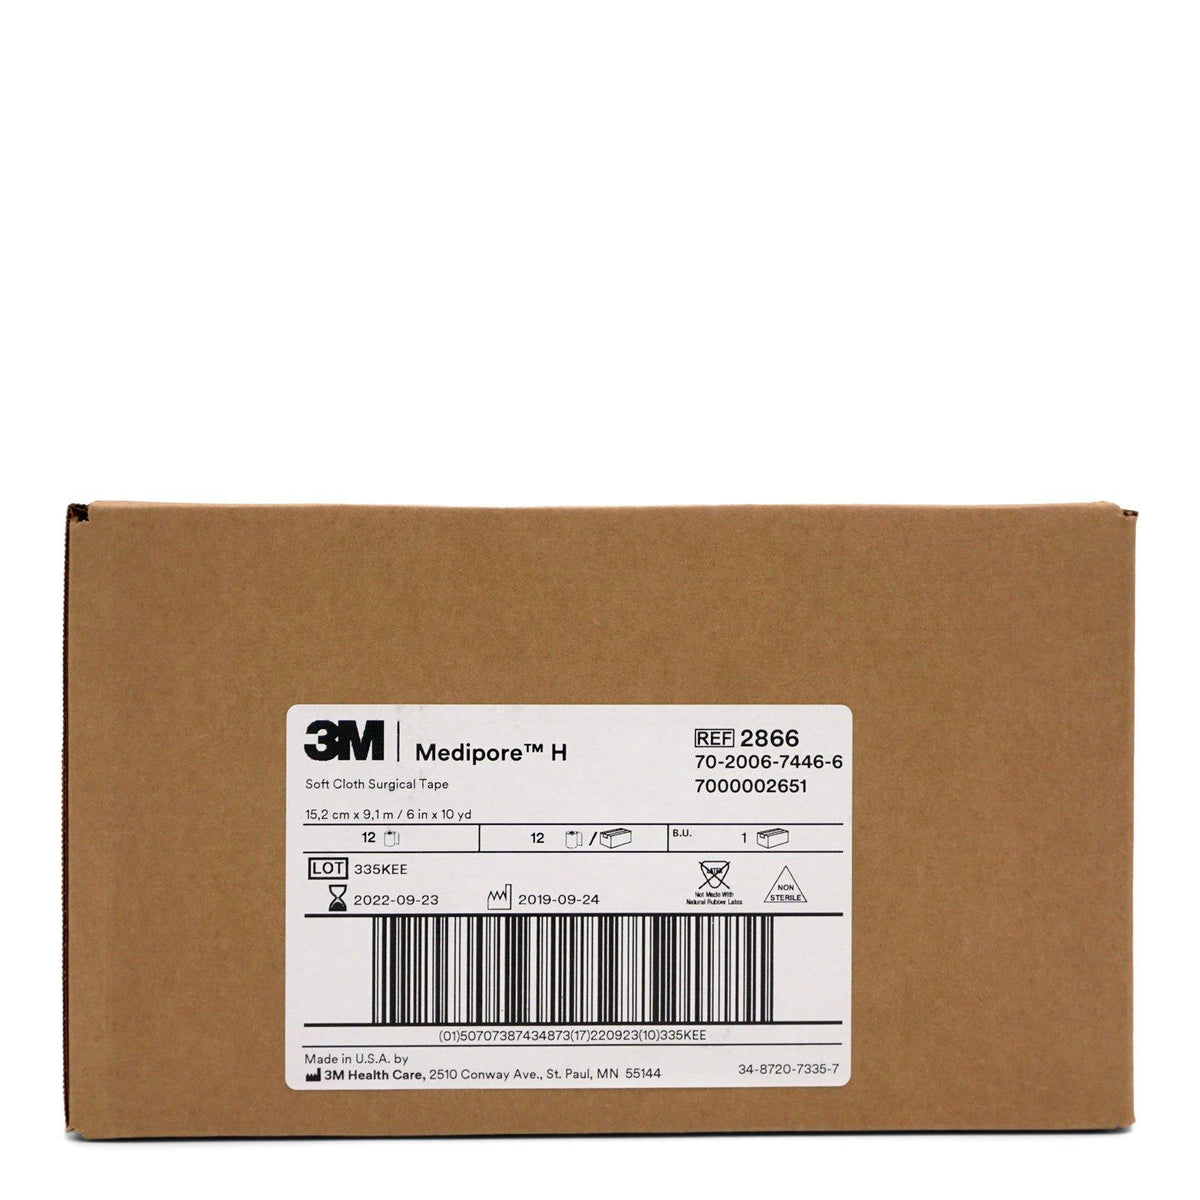 3M Healthcare | Medipore Soft Cloth Surgical Tape (12/cs)